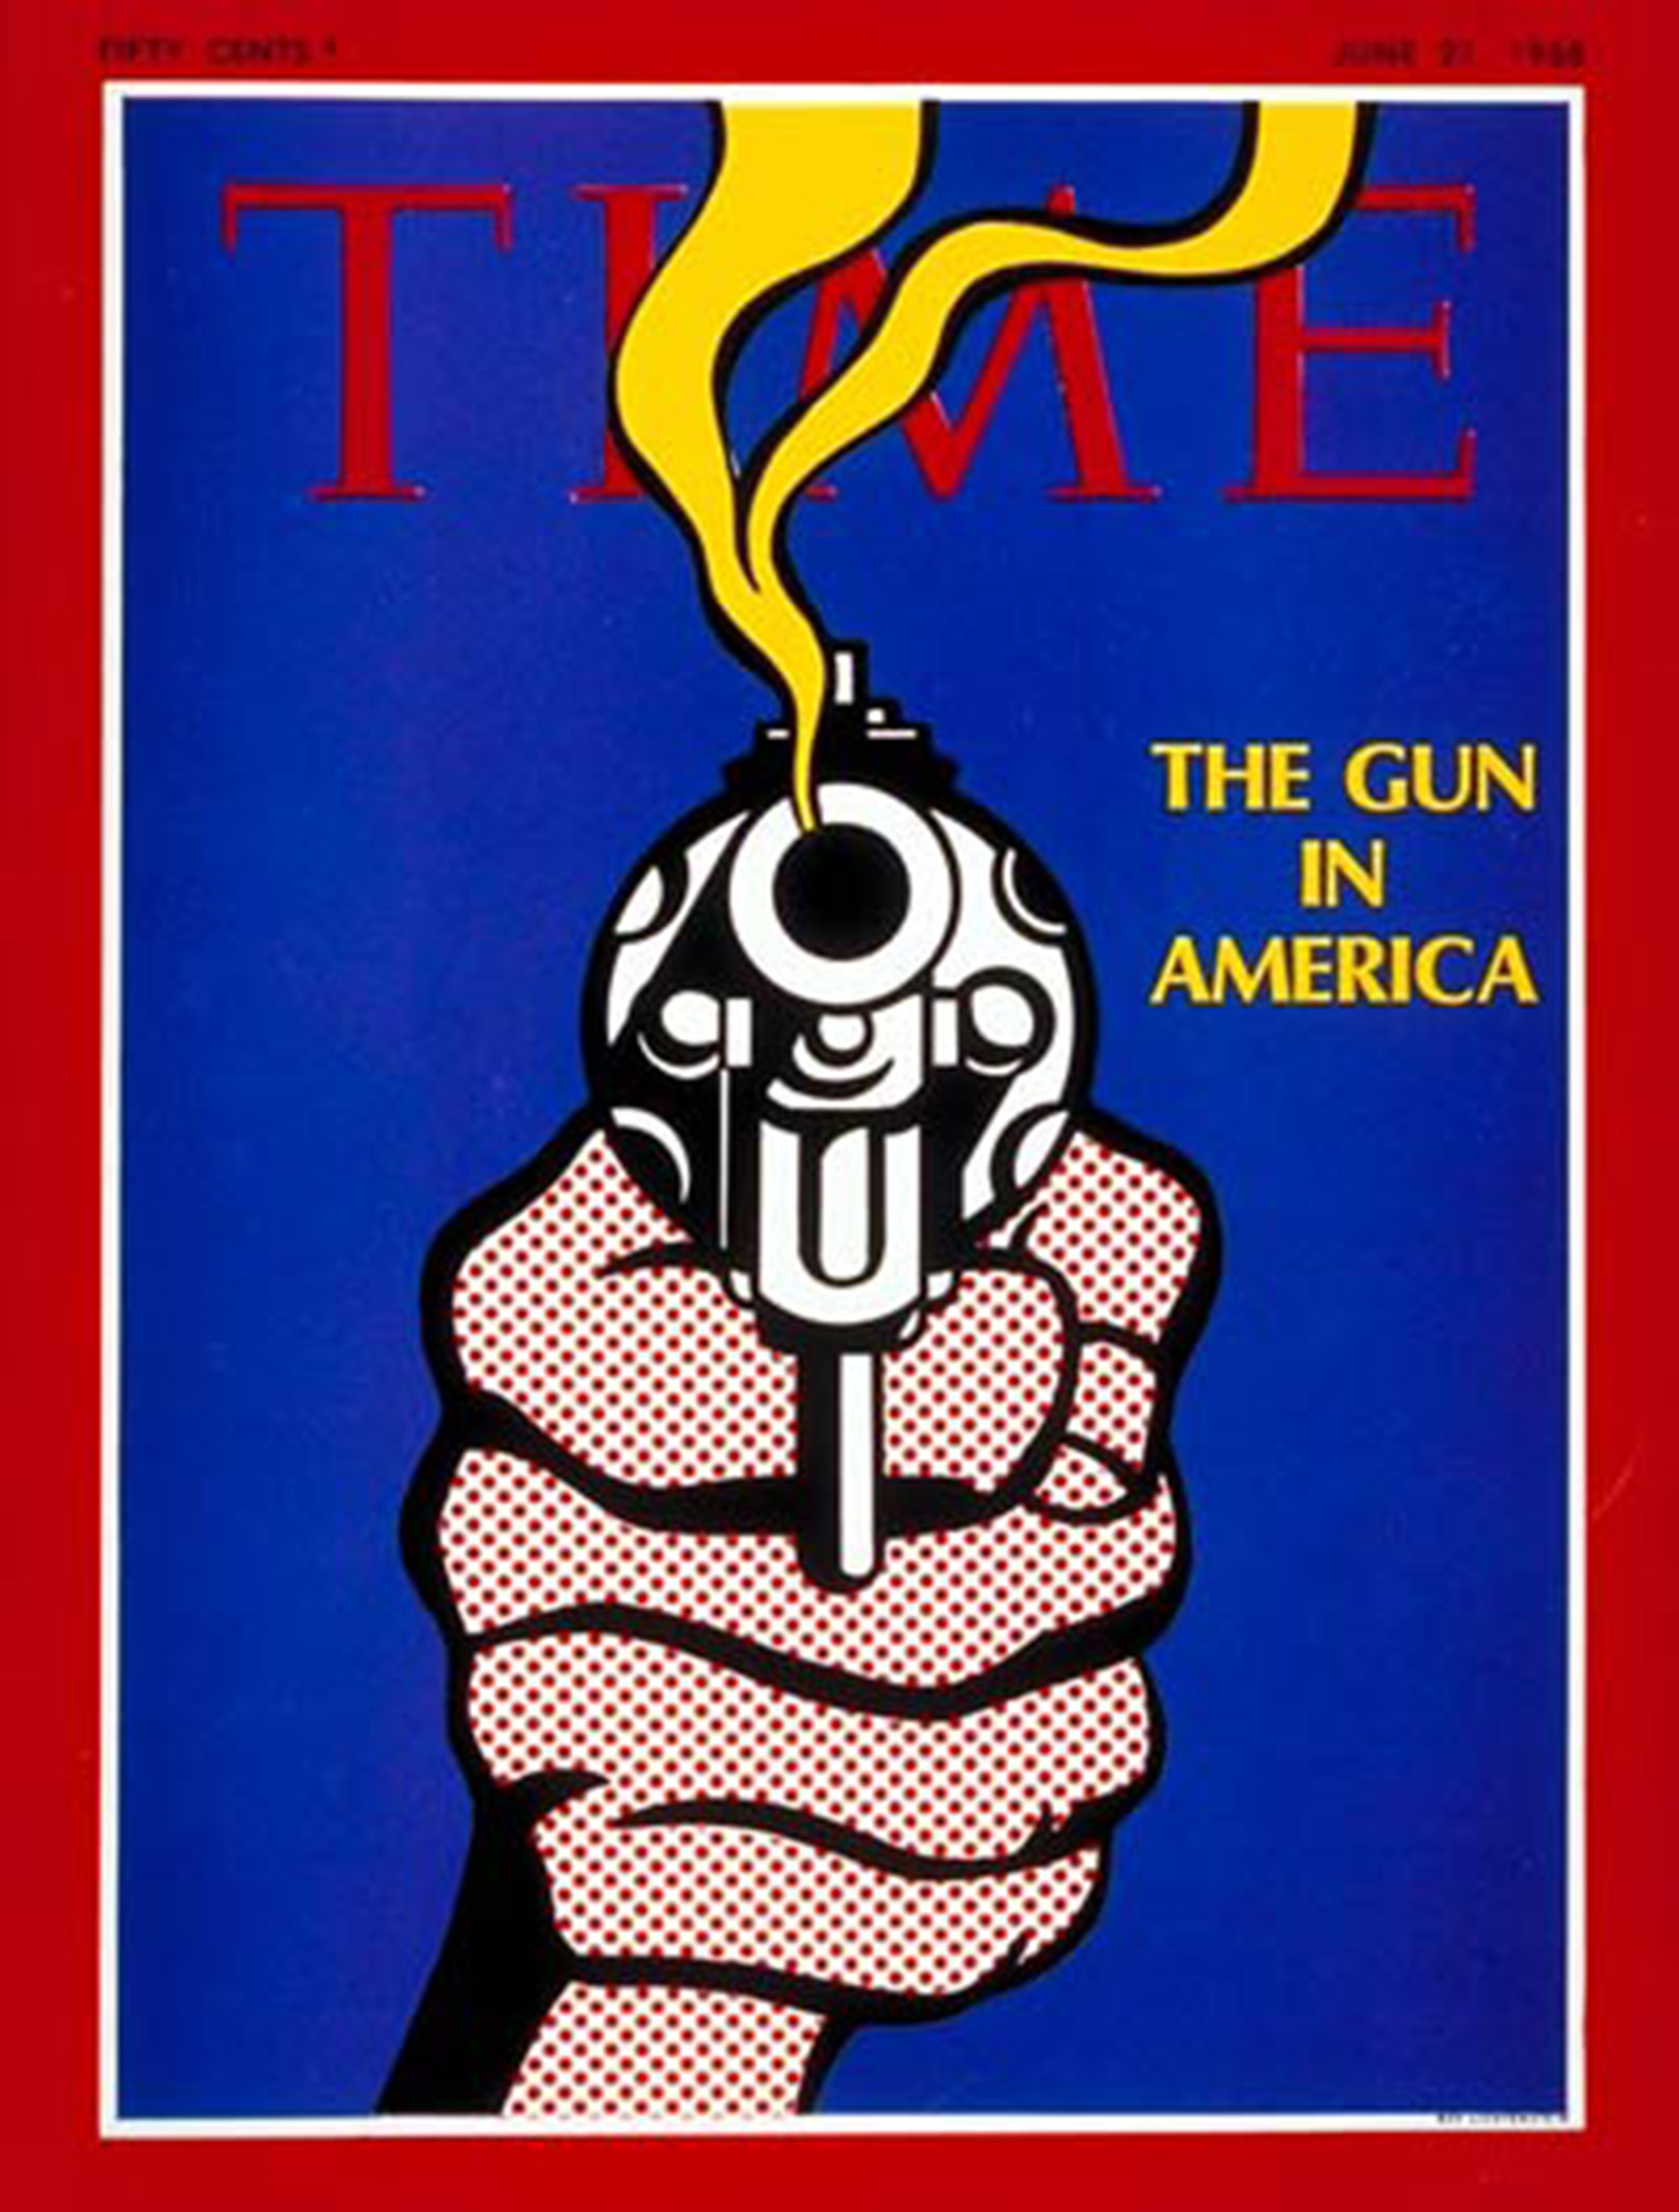 The Jun. 21, 1968, cover of TIME following the assassination of Robert F. Kennedy on Jun. 6